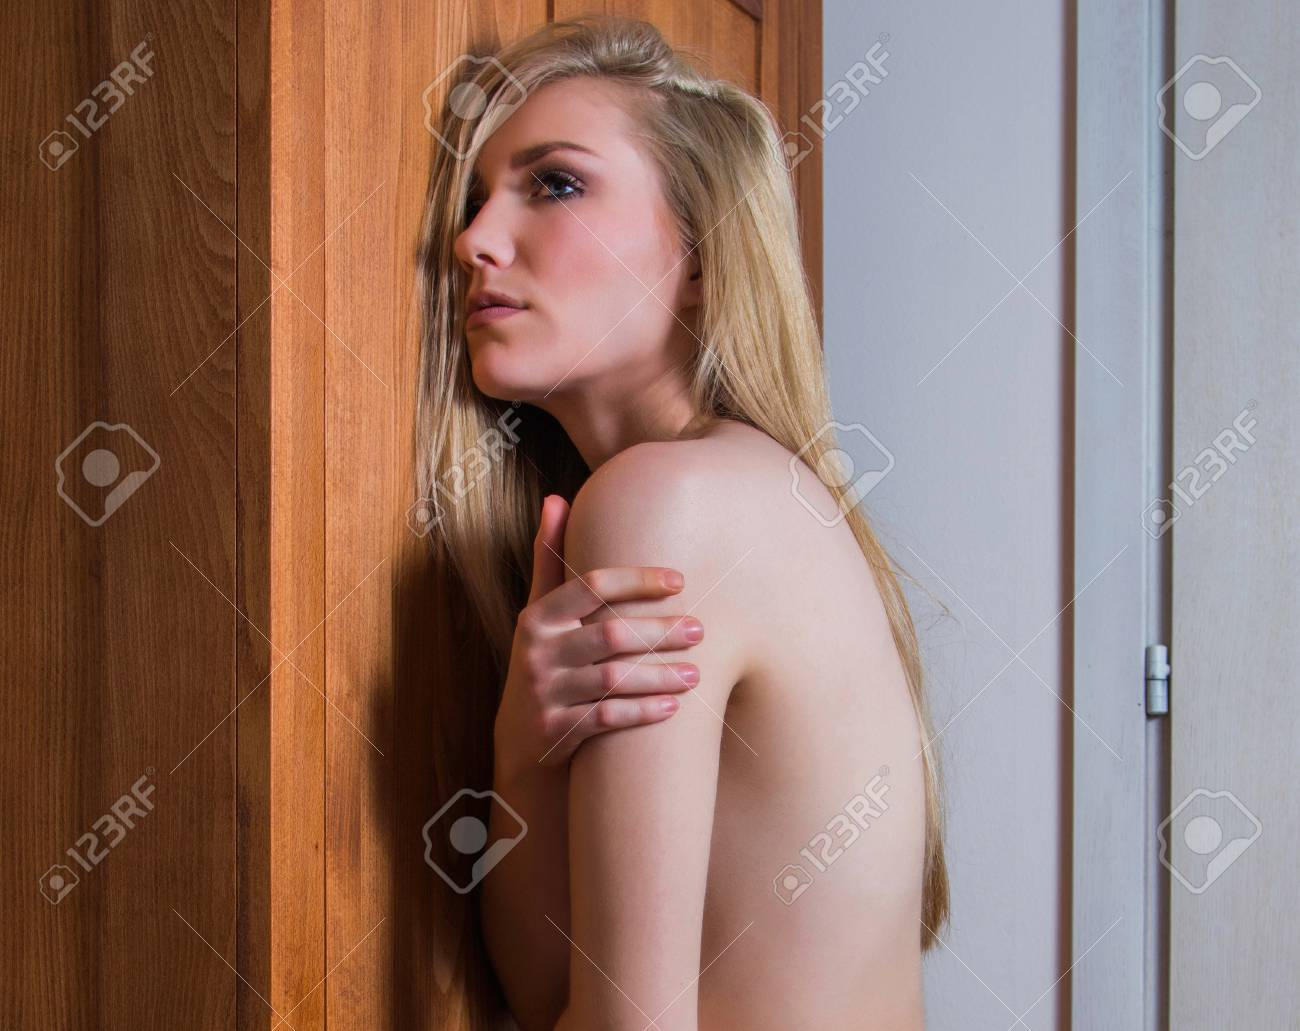 young nude sexy lady leaning on old wooden retro vintage locker